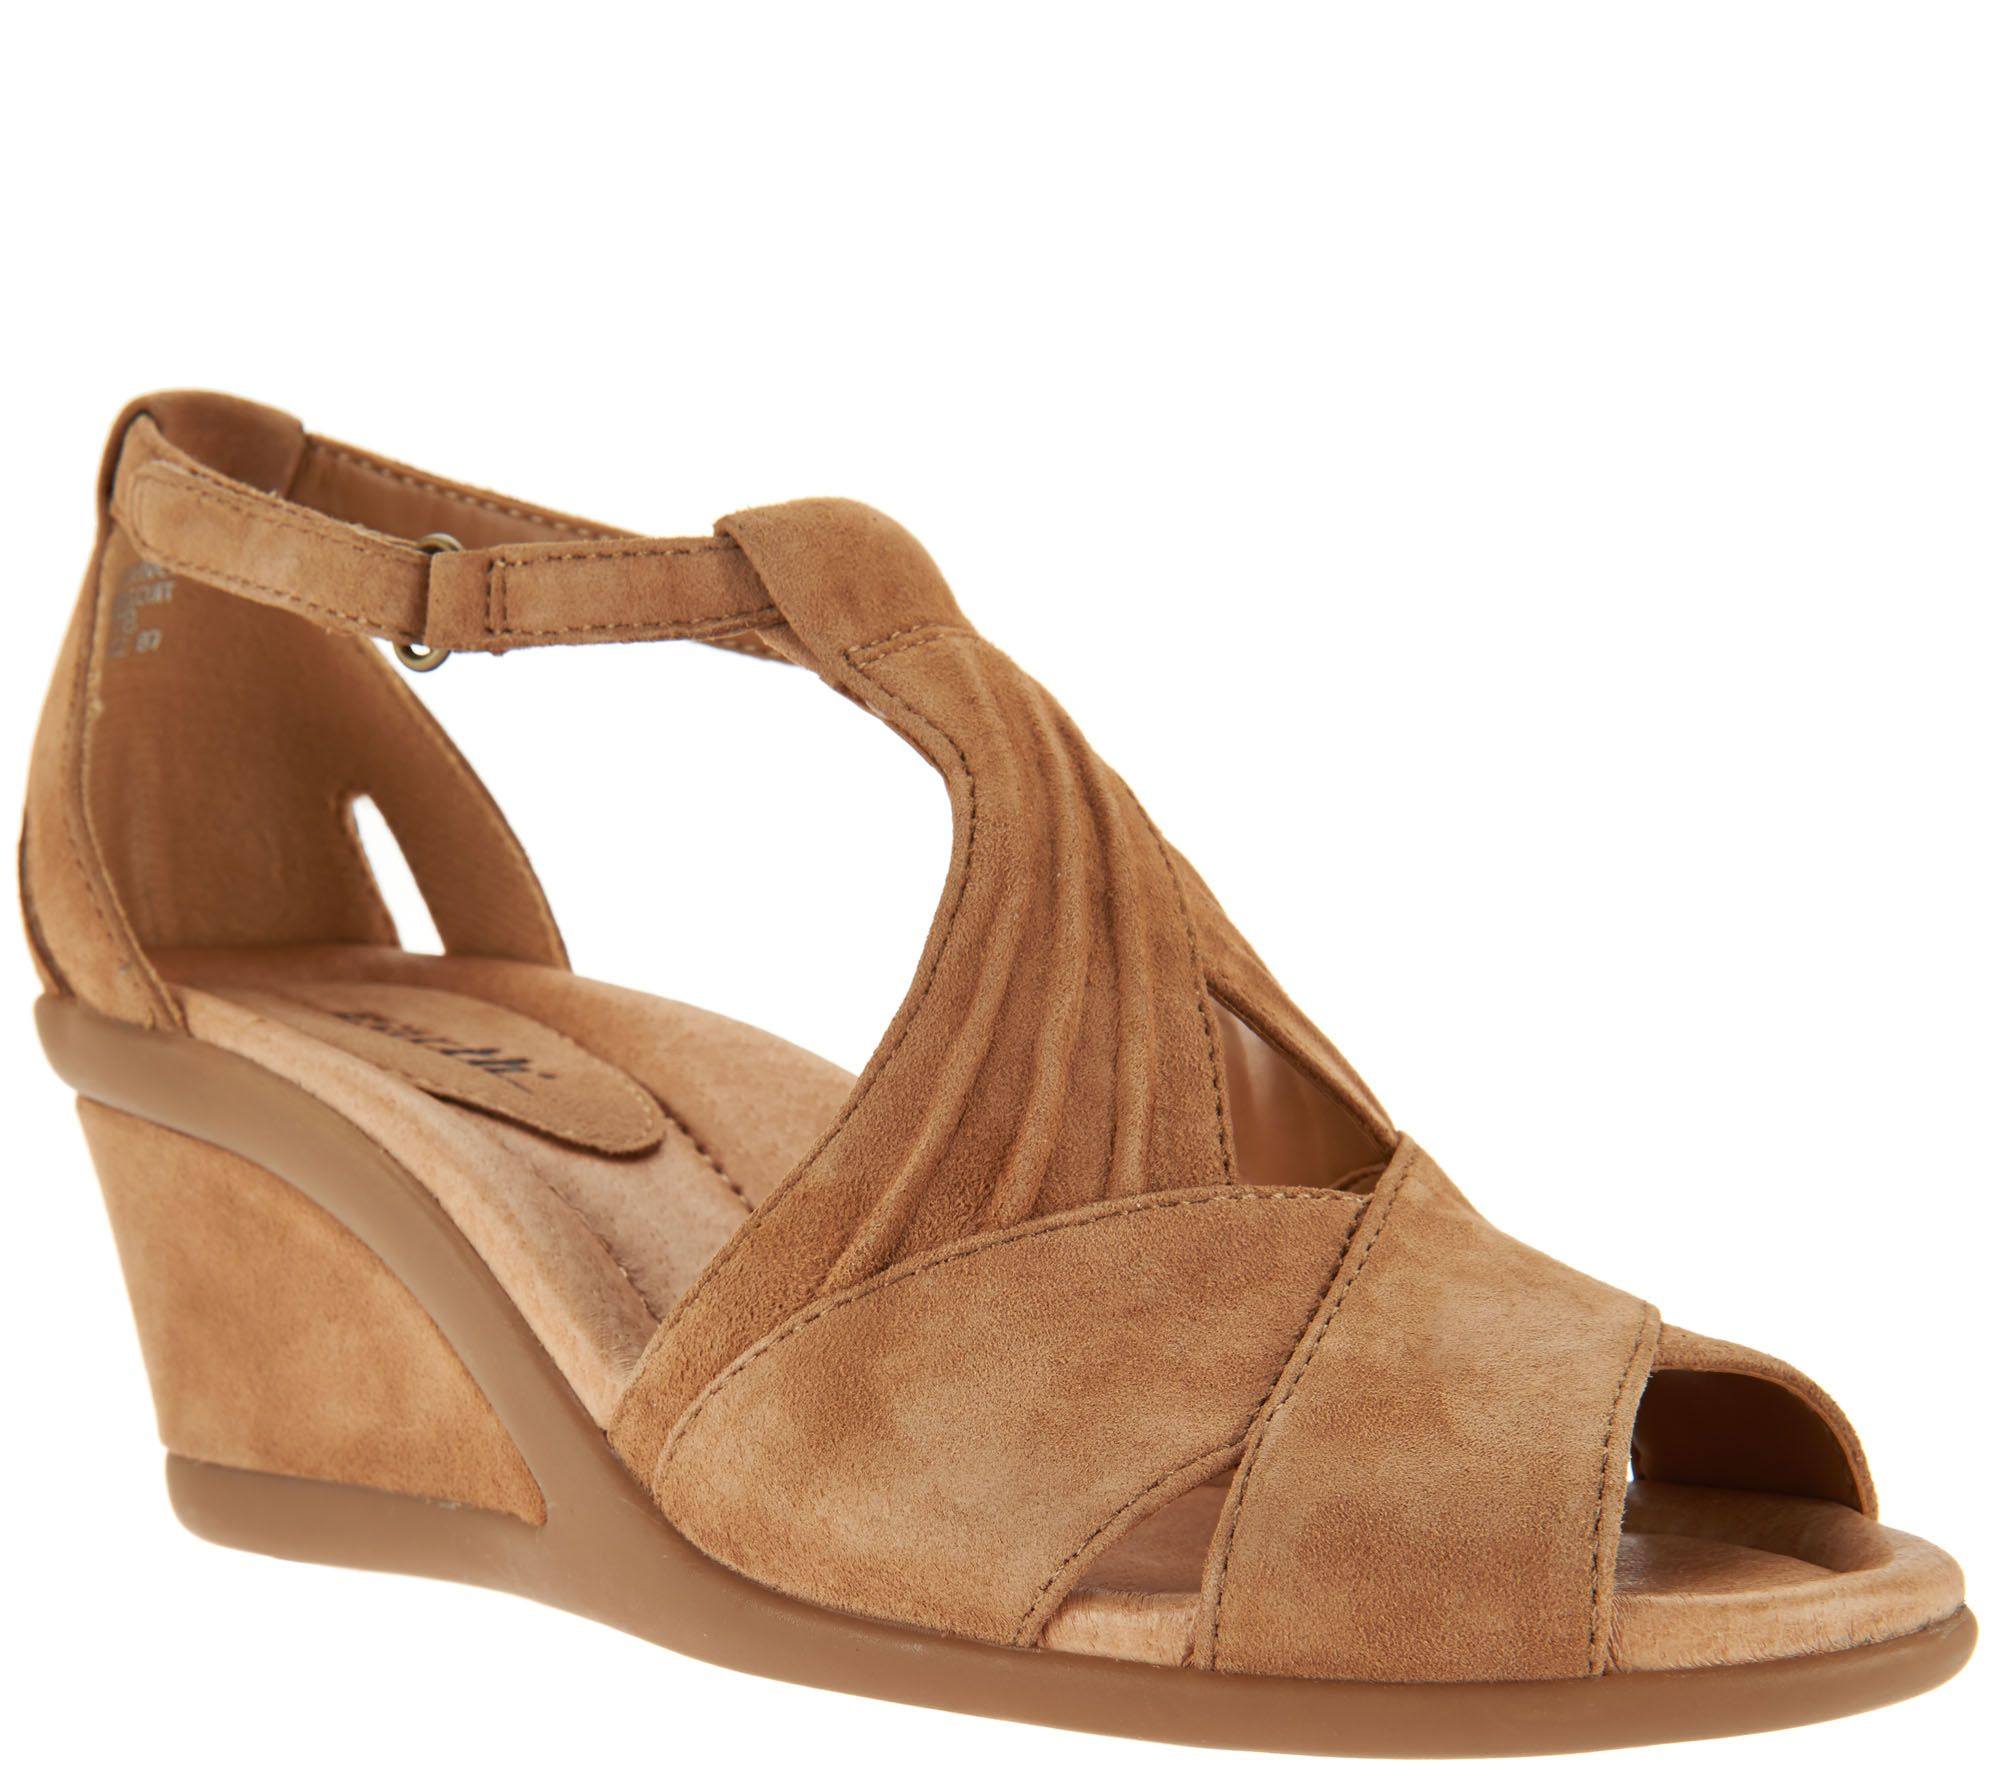 851db2cfd0ad Earth Suede Peep-Toe Wedge Sandals - Curvet - Page 1 — QVC.com